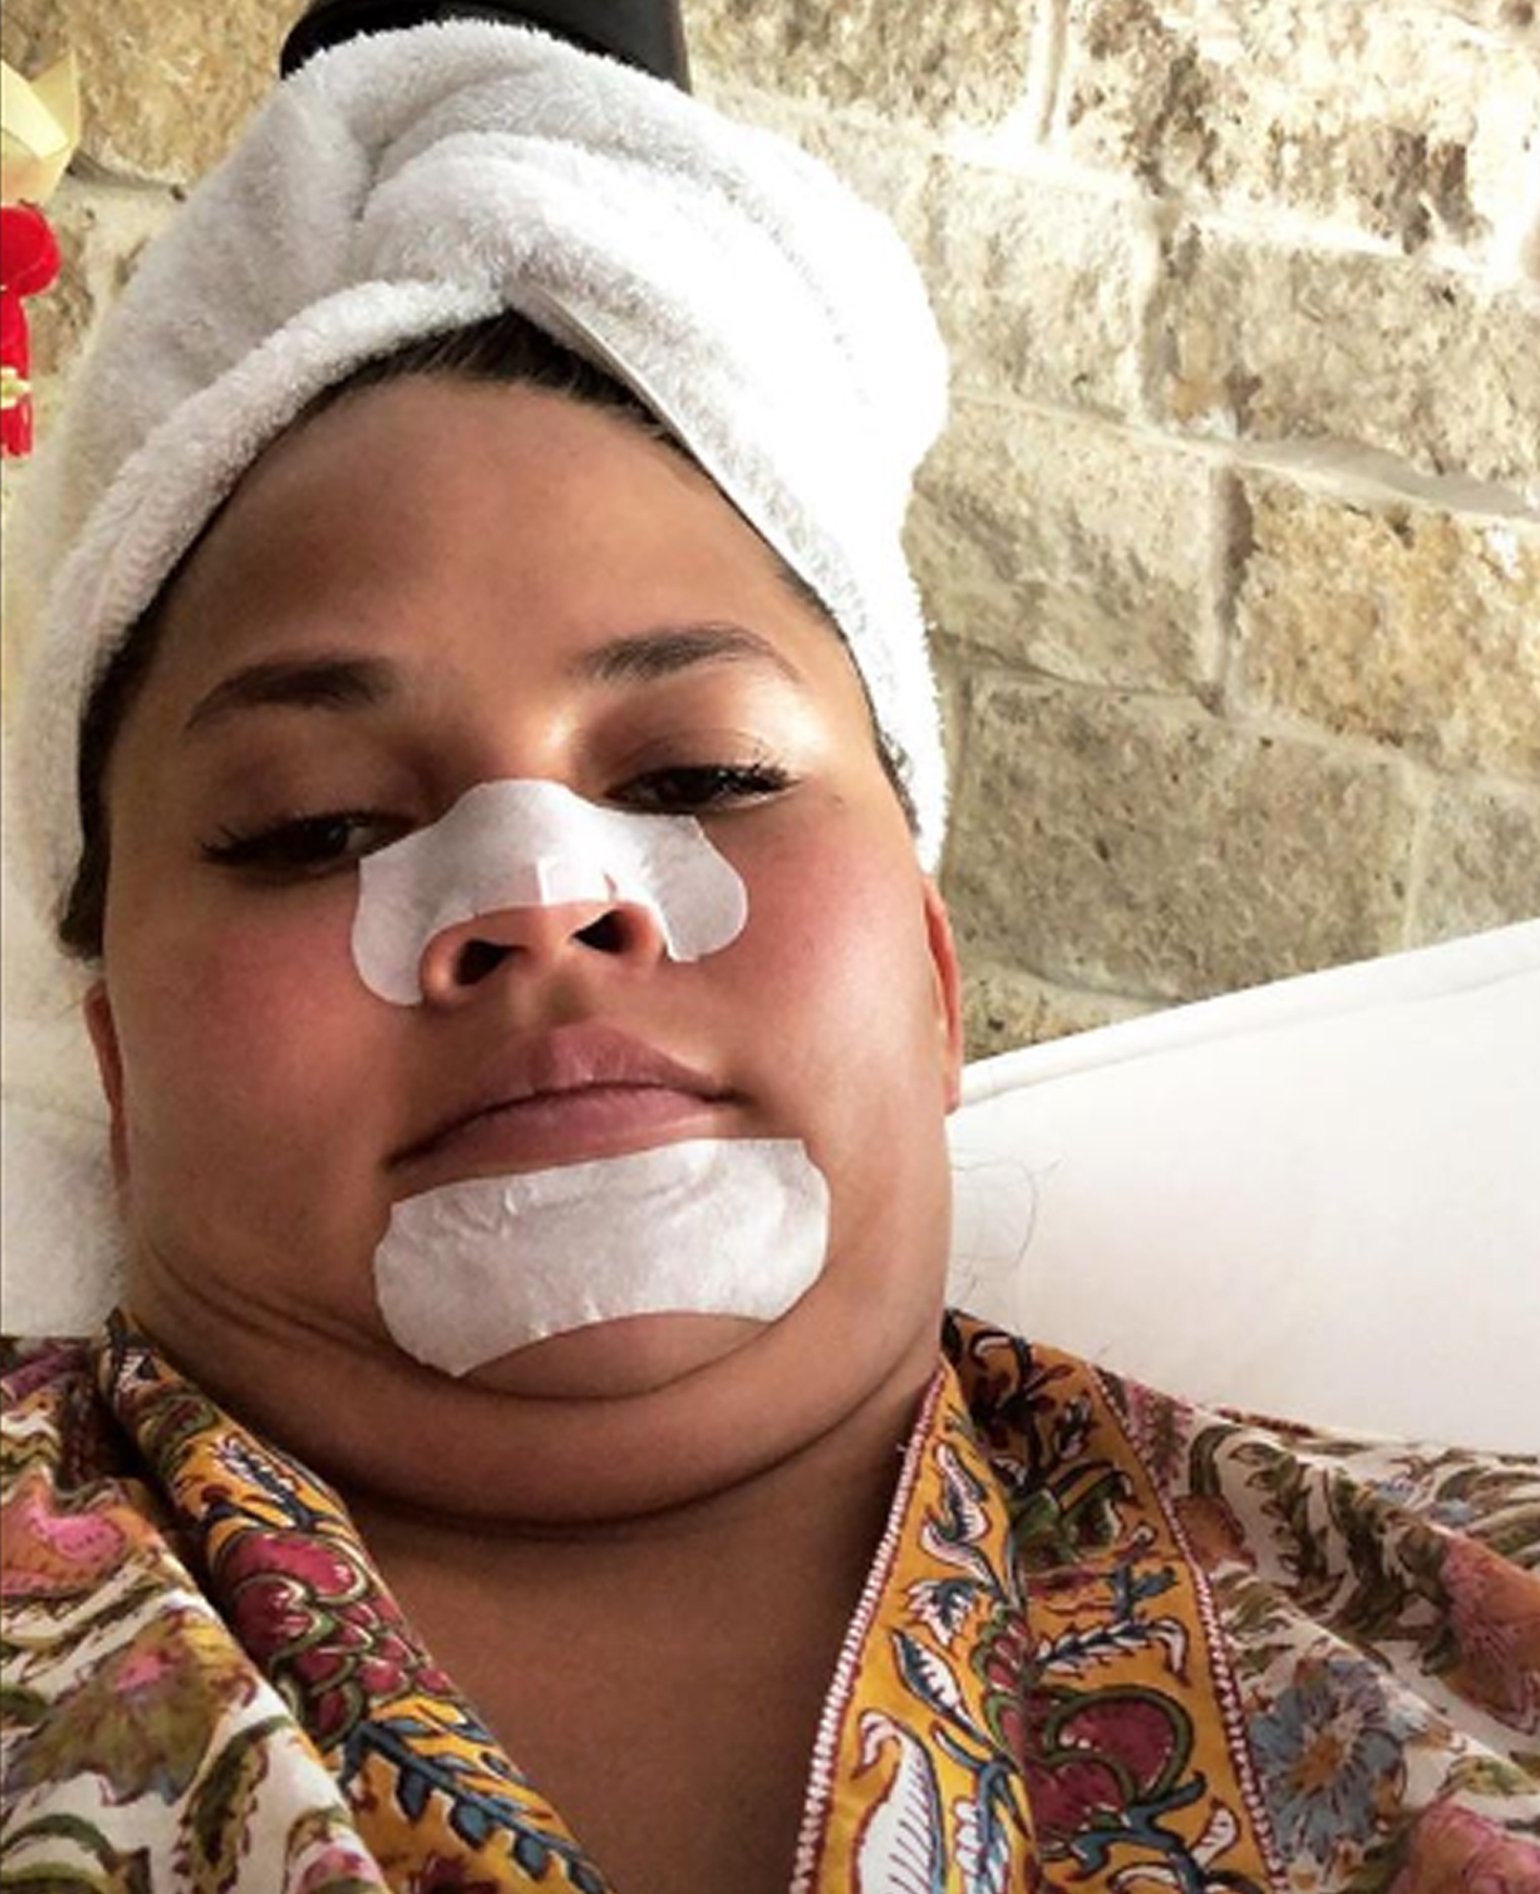 Chrissy-Teigen-Shared-The-Most-Unflattering-Selfie-Everyone-Loved-It